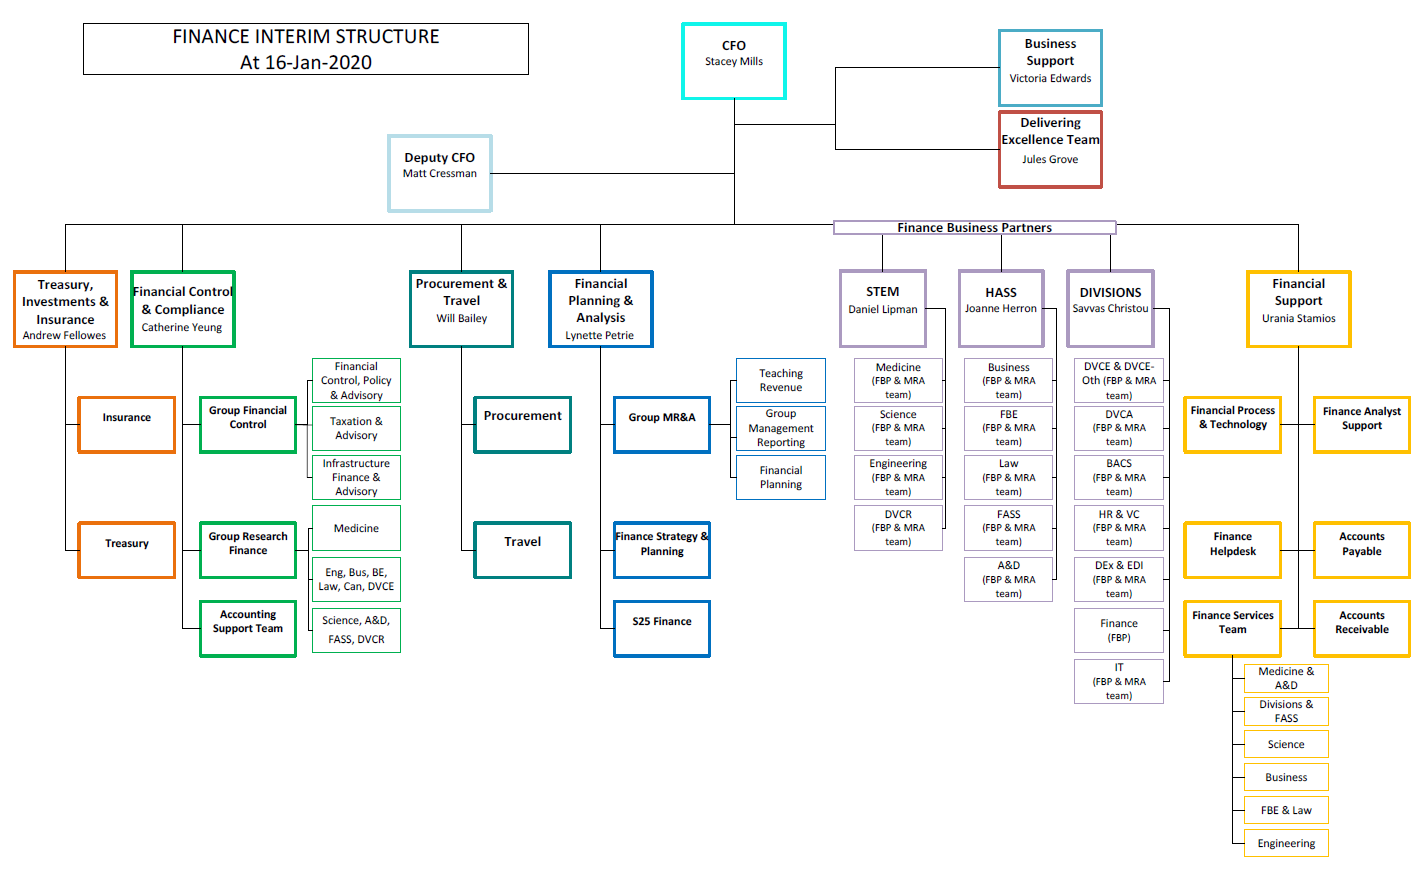 finance_interim_structure_6.01.2020_2.png